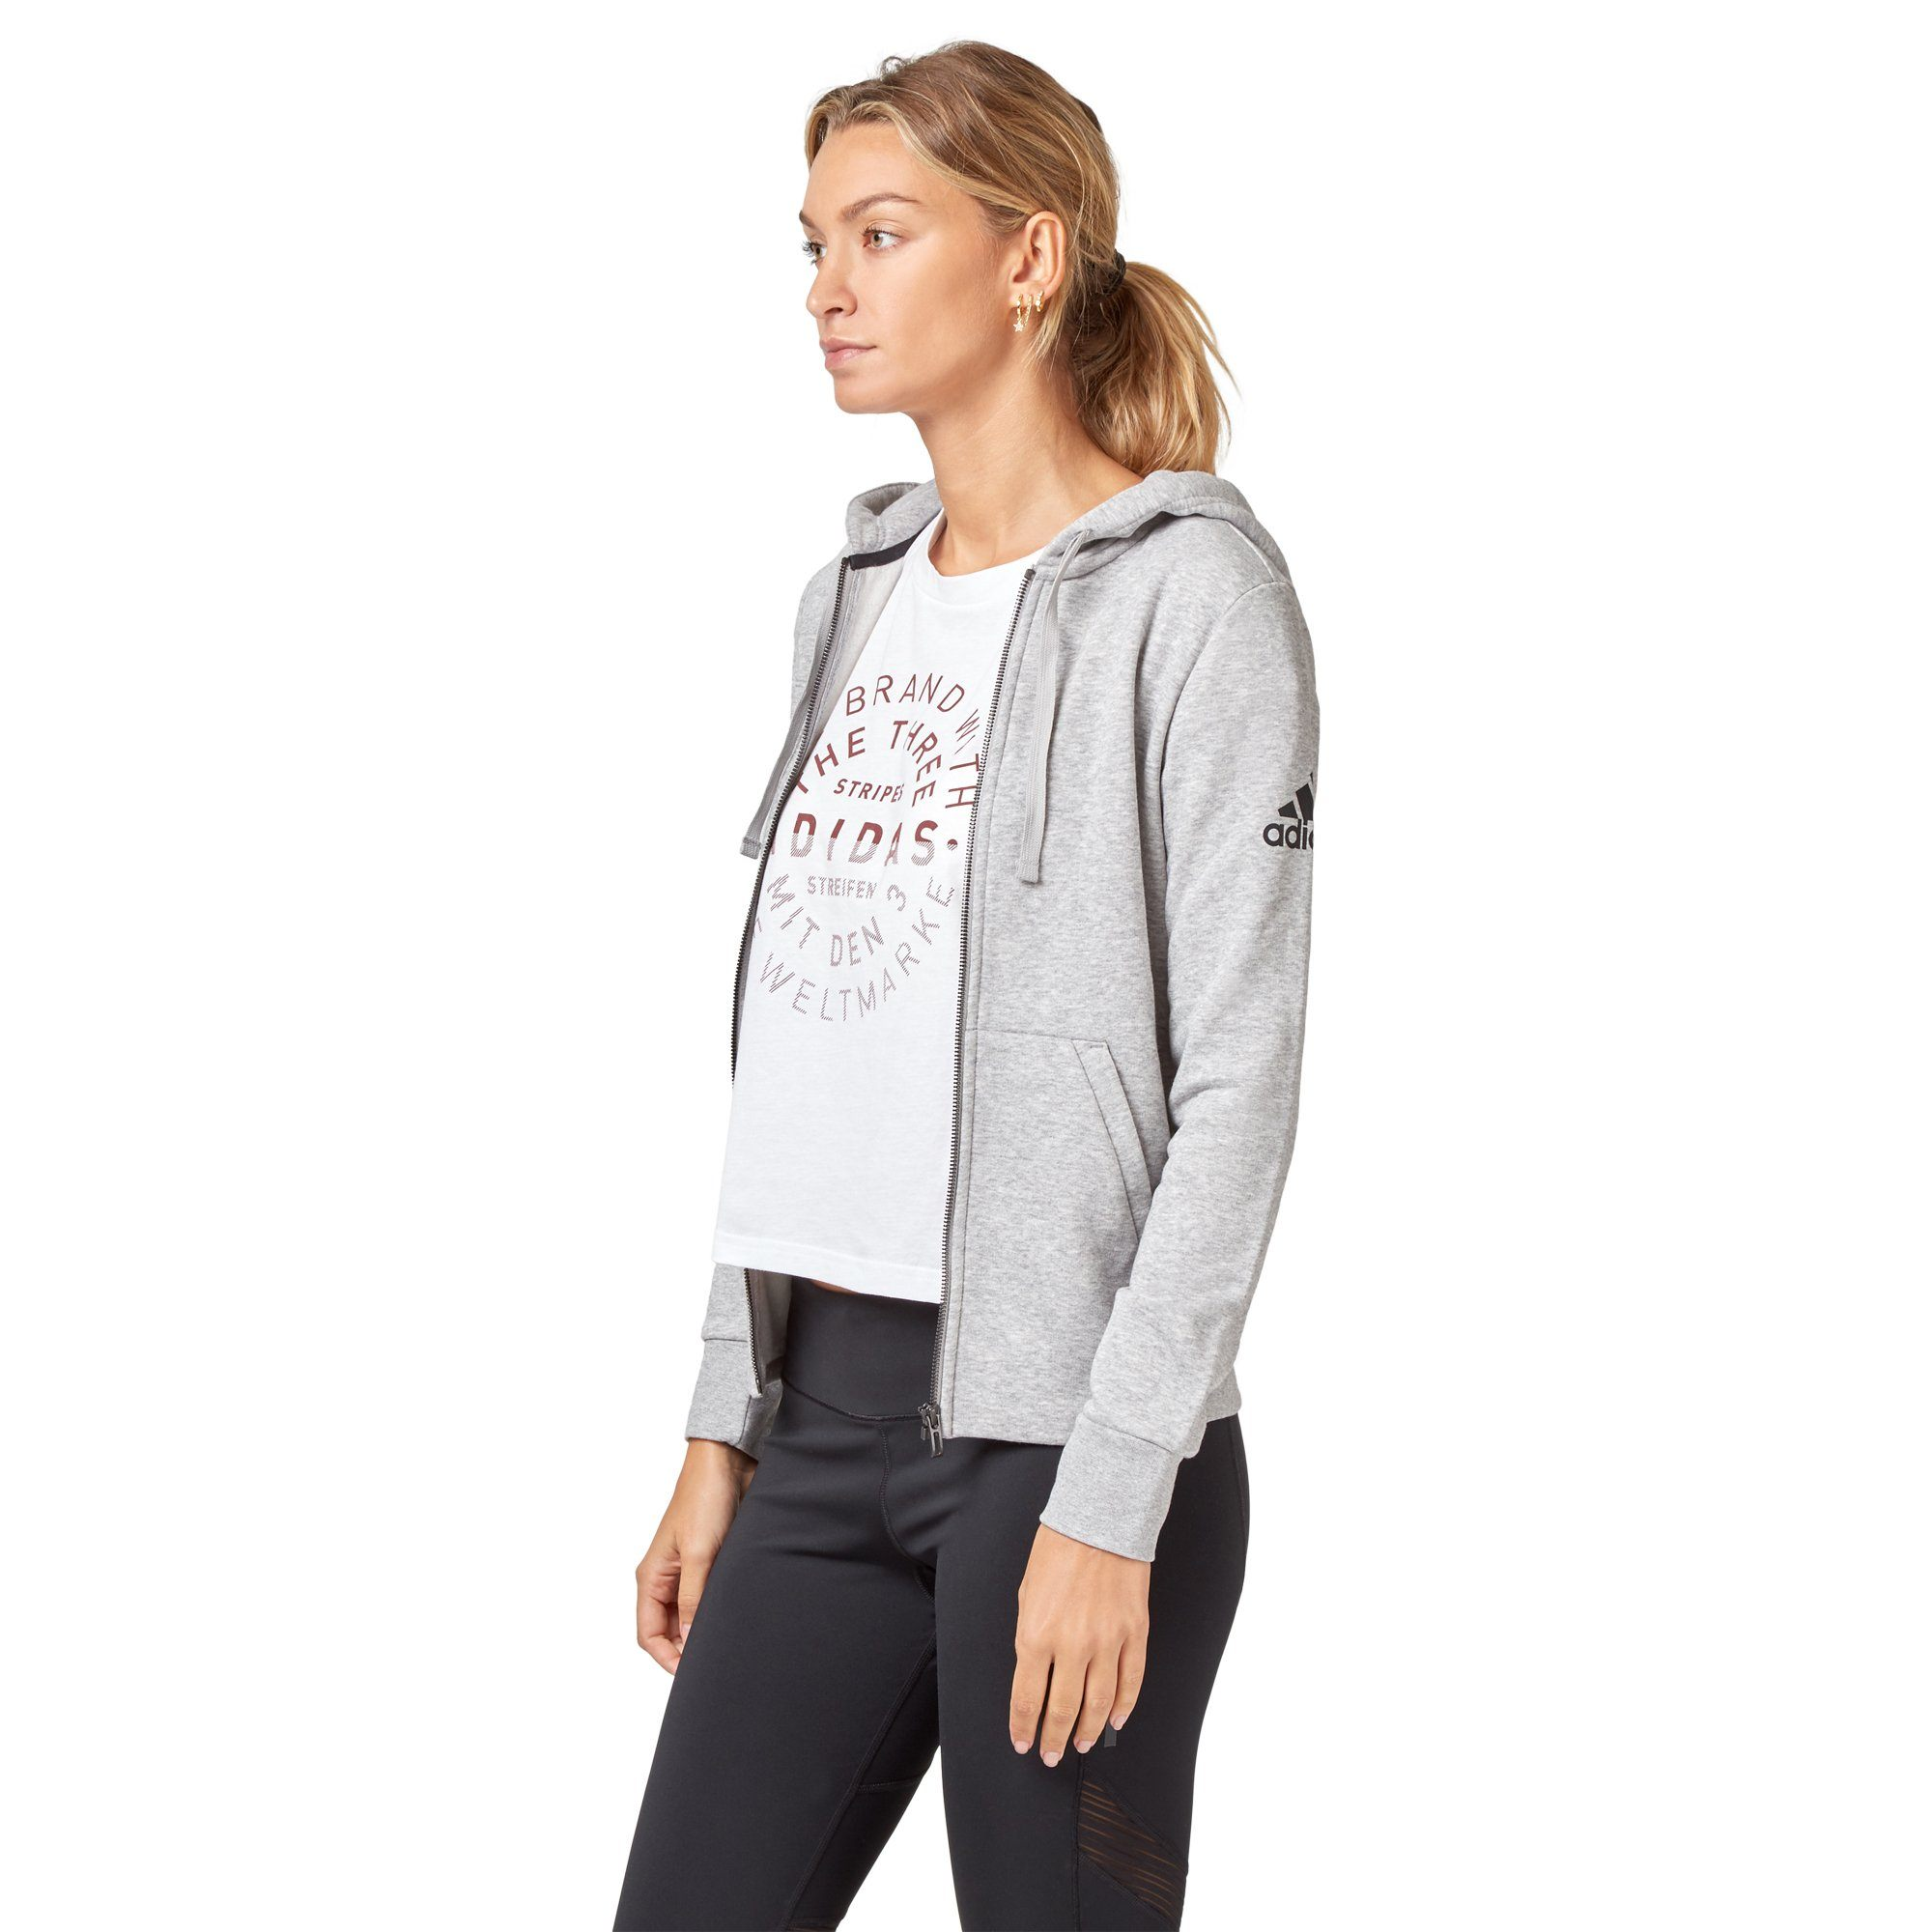 Adidas Women's Essentials Solid Hoodie - Mid grey heather SportsPower Geelong